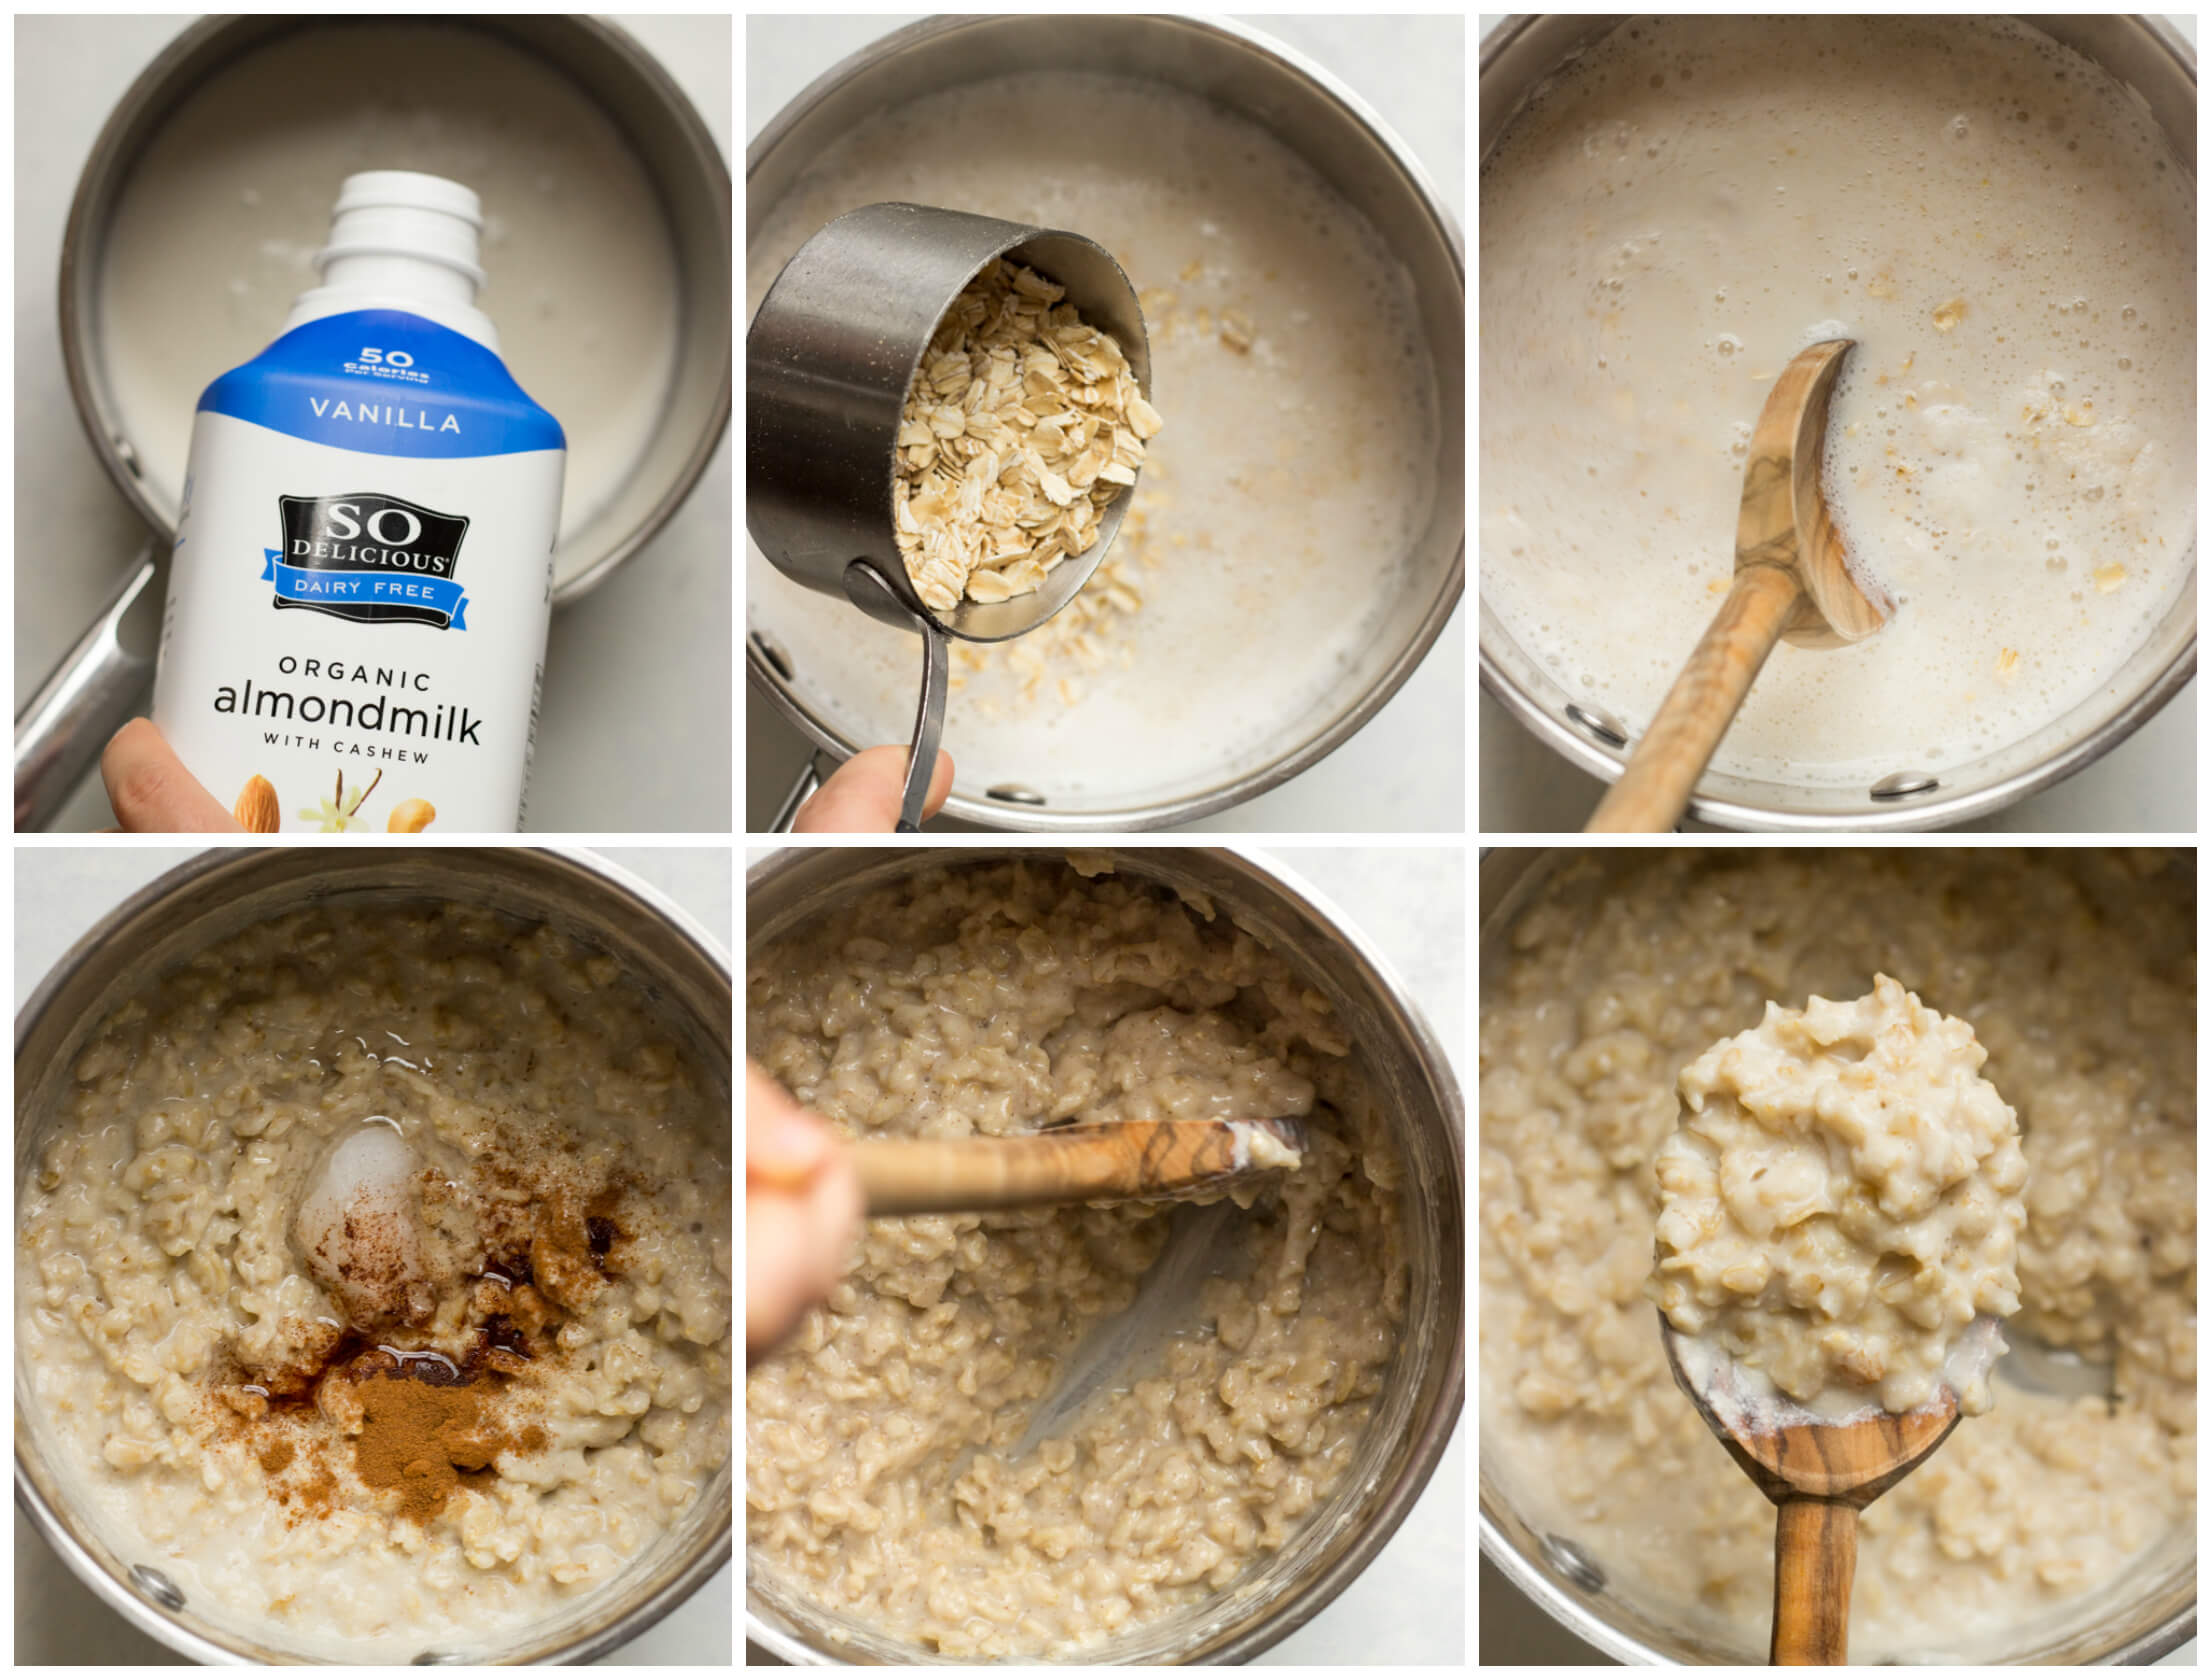 Vanilla Coconut Oatmeal Bowl - just like a smoothie bowl except it's an oatmeal bowl! Made with almond milk, coconut, and pinch of cinnamon. Add your favorite toppings and you have yourself the BEST breakfast | littlebroken.com @littlebroken